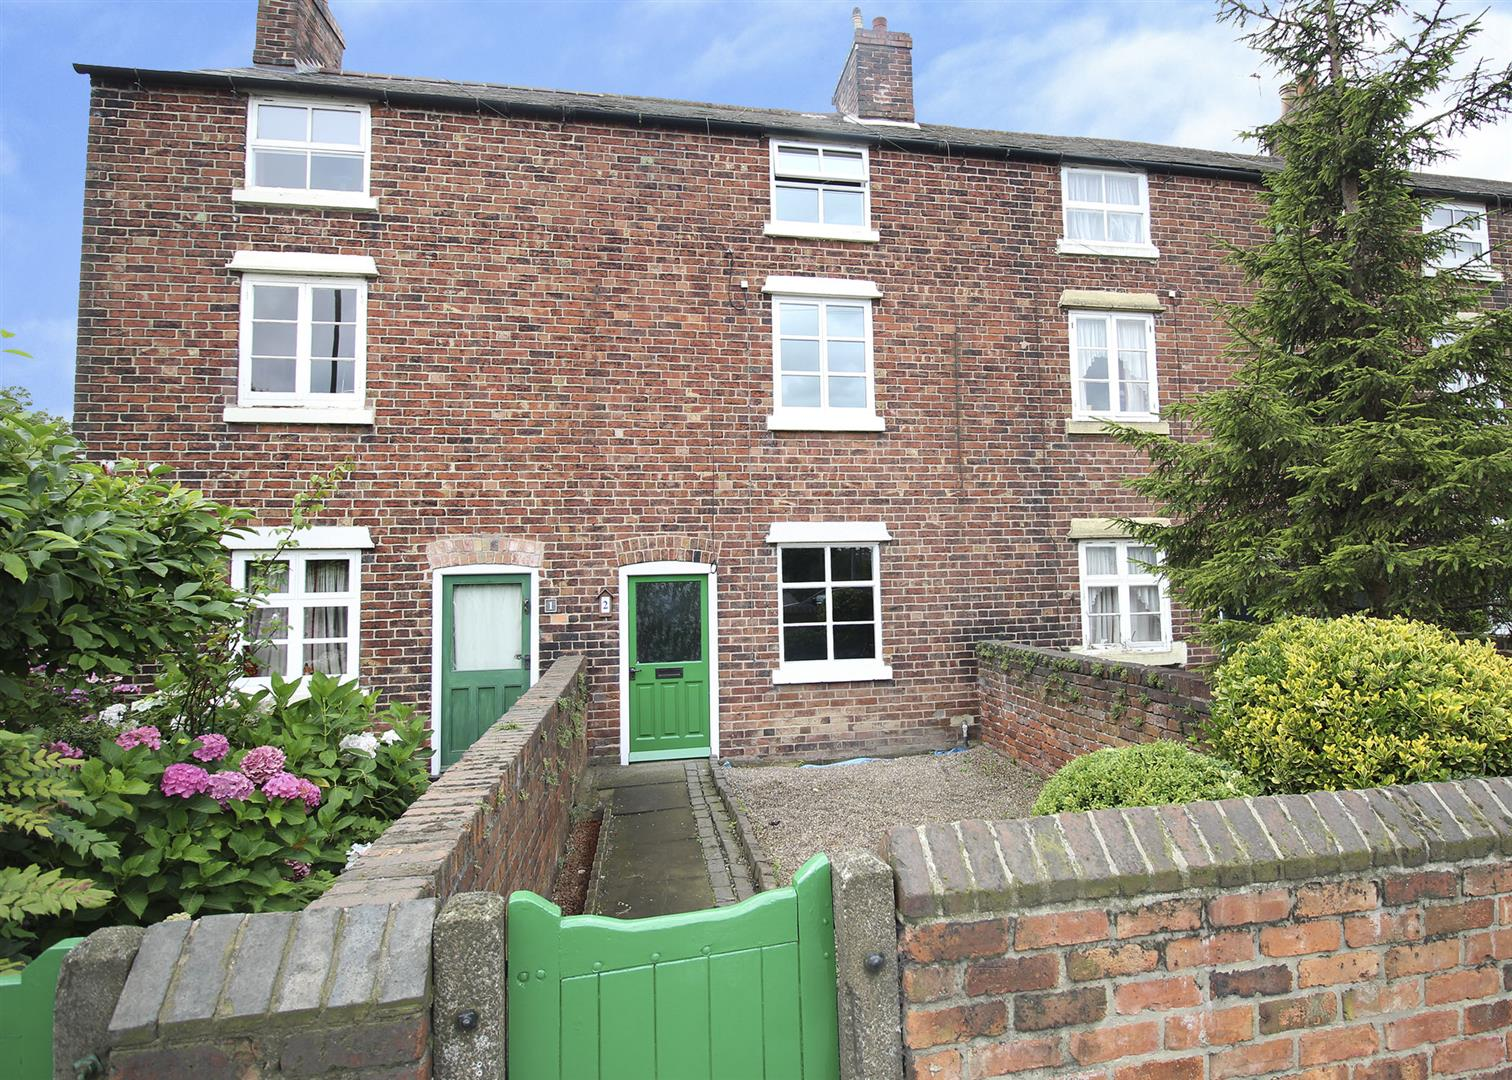 3 Bedrooms Terraced House for sale in New Stanton, Stanton-By-Dale